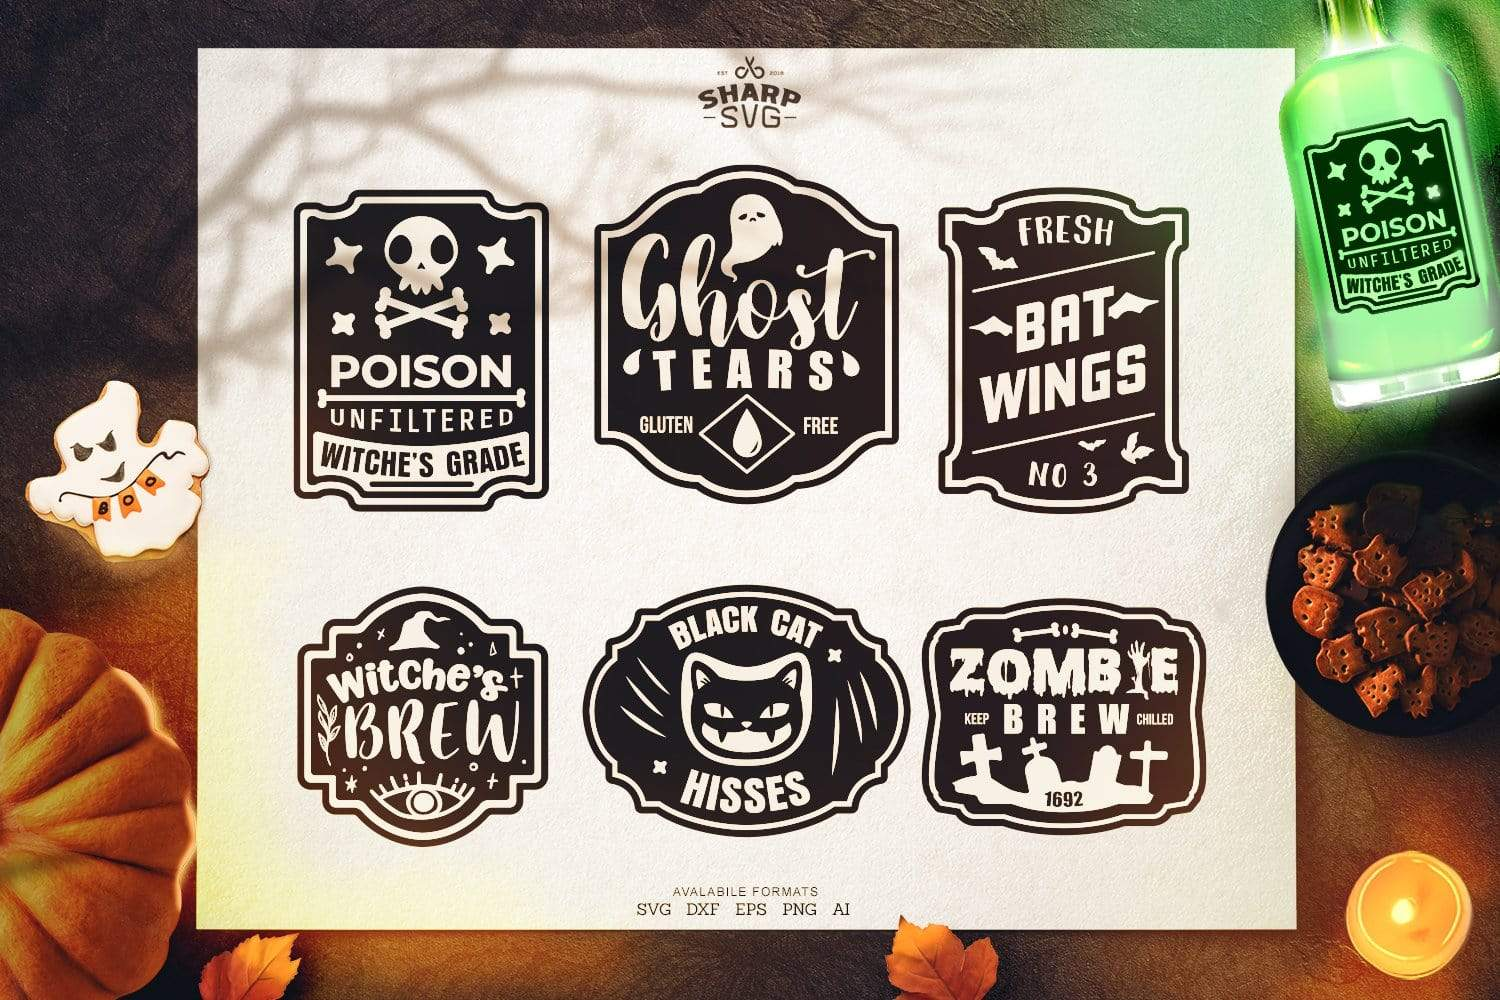 ULTIMATE HALLOWEEN SVG BUNDLE free DIGITAL DOWNLOAD SharpSVG